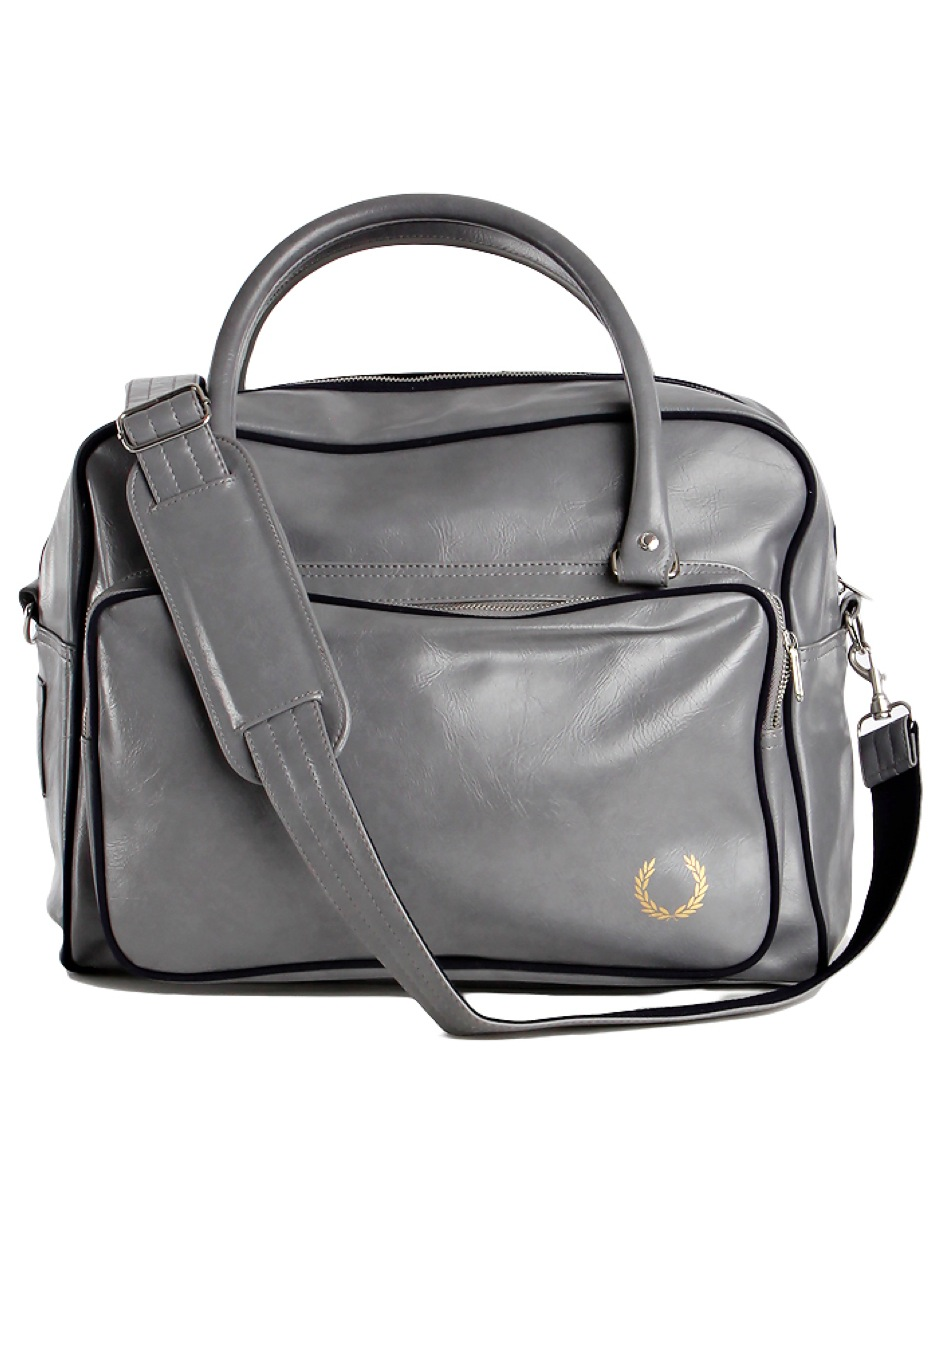 Fred Perry - Holdall Grey - Bag - Streetwear Shop - Impericon.com Worldwide 0582d72a1595f